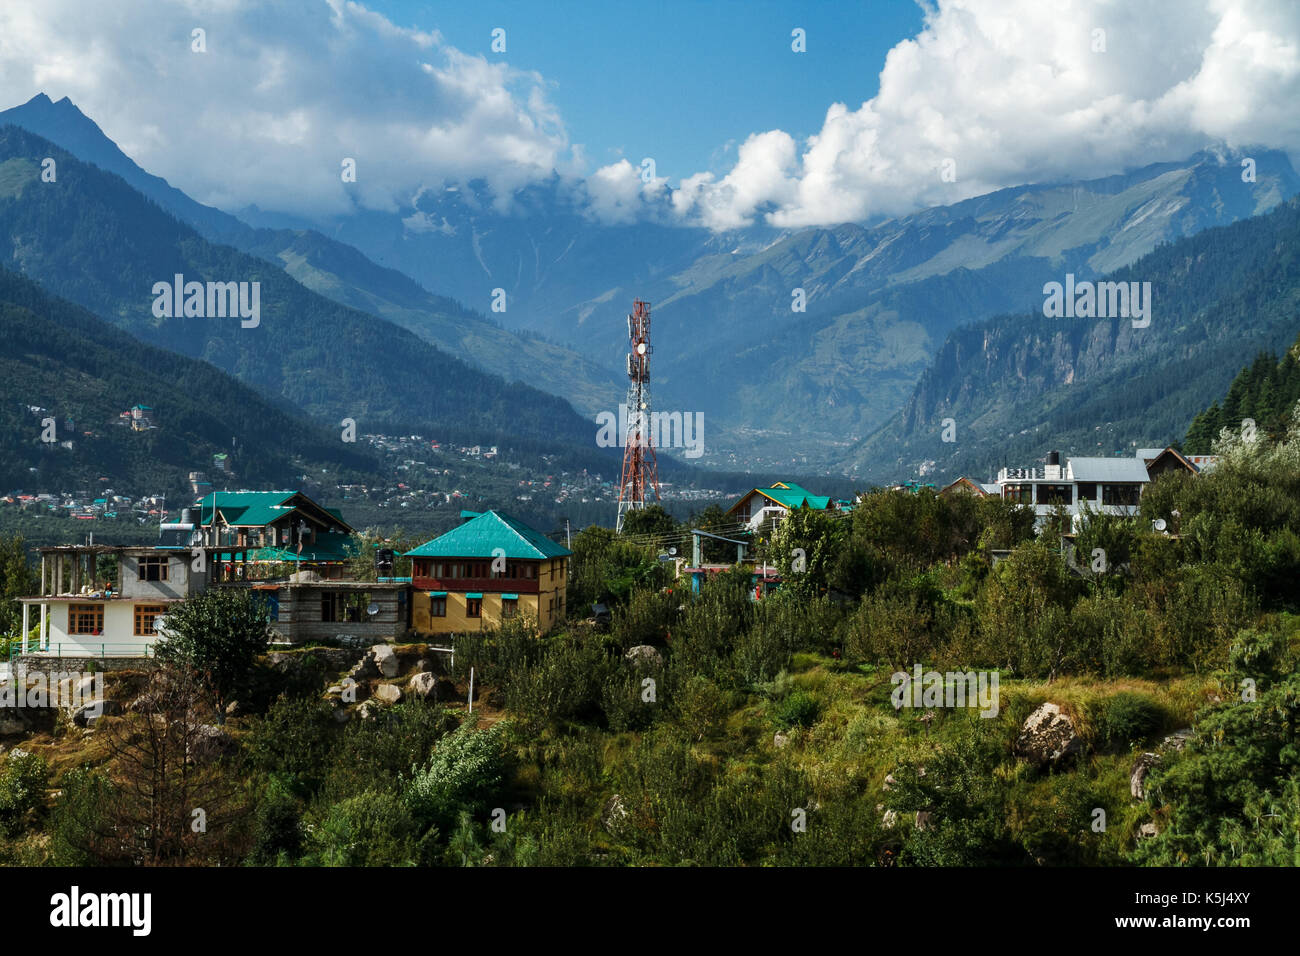 Mobile phone tower and Rohtang La backdrop, Himachal Pradesh - Stock Image